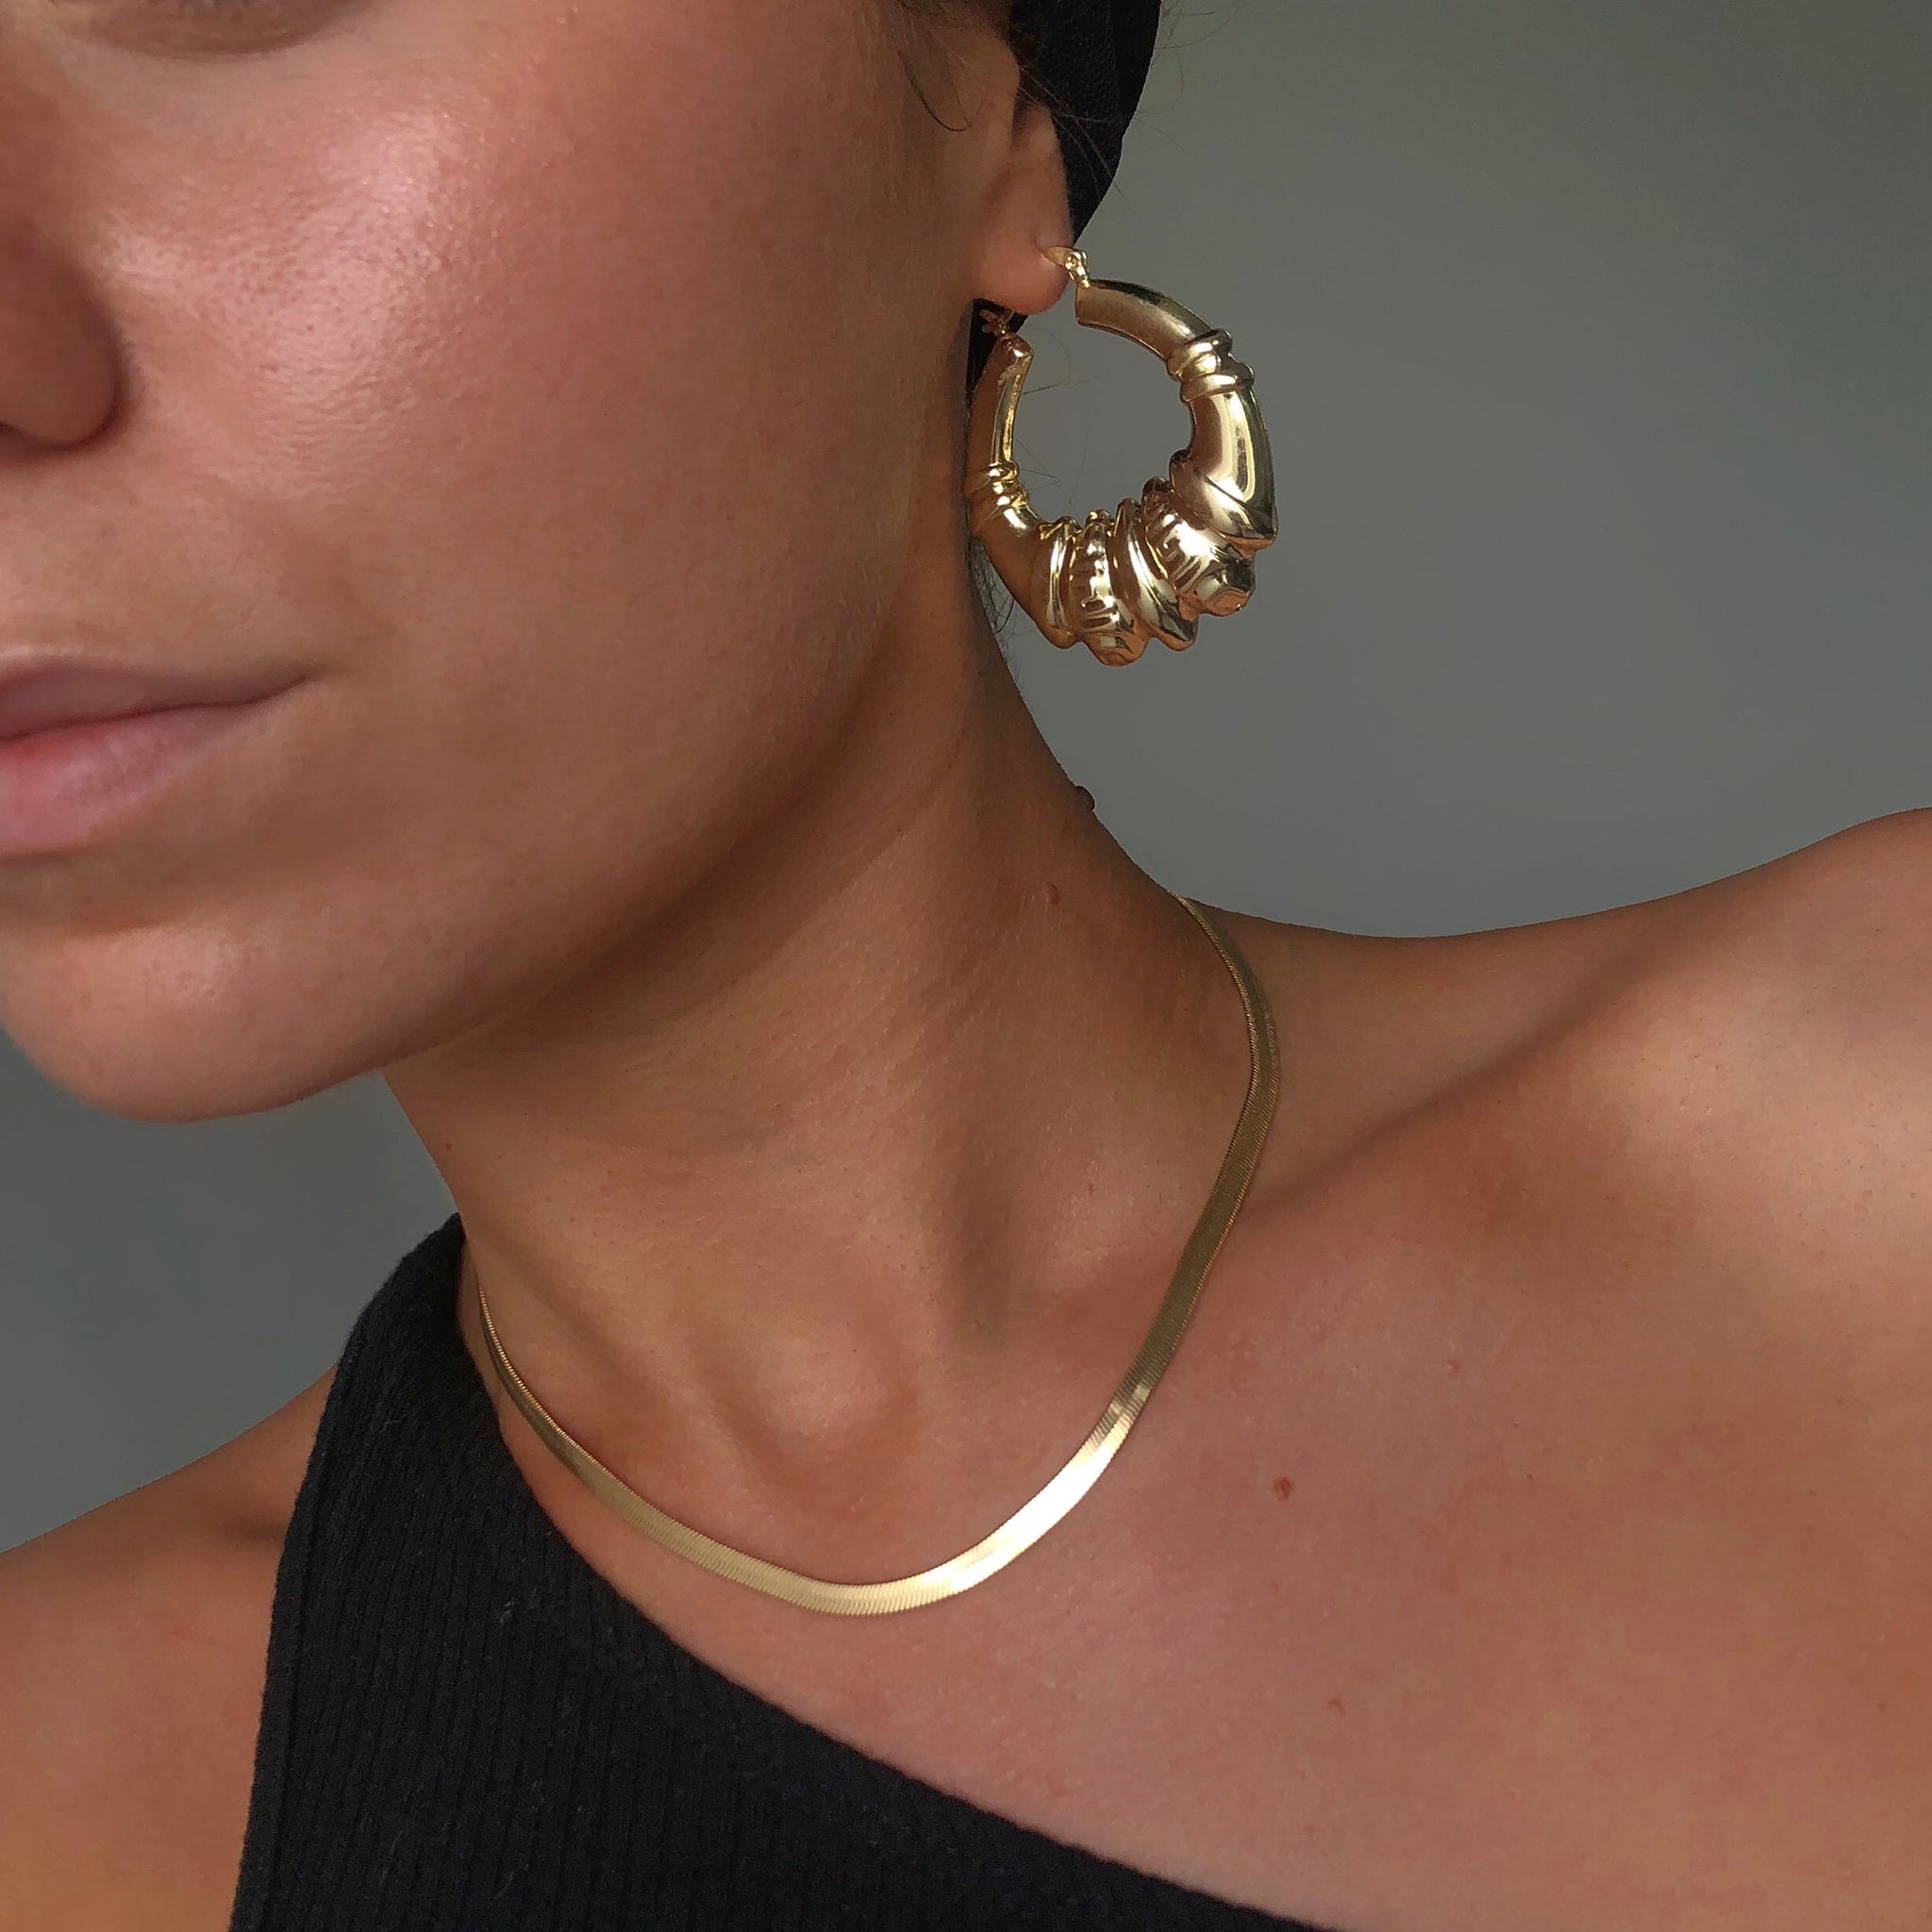 Gold filled herringbone chain - Neckontheline